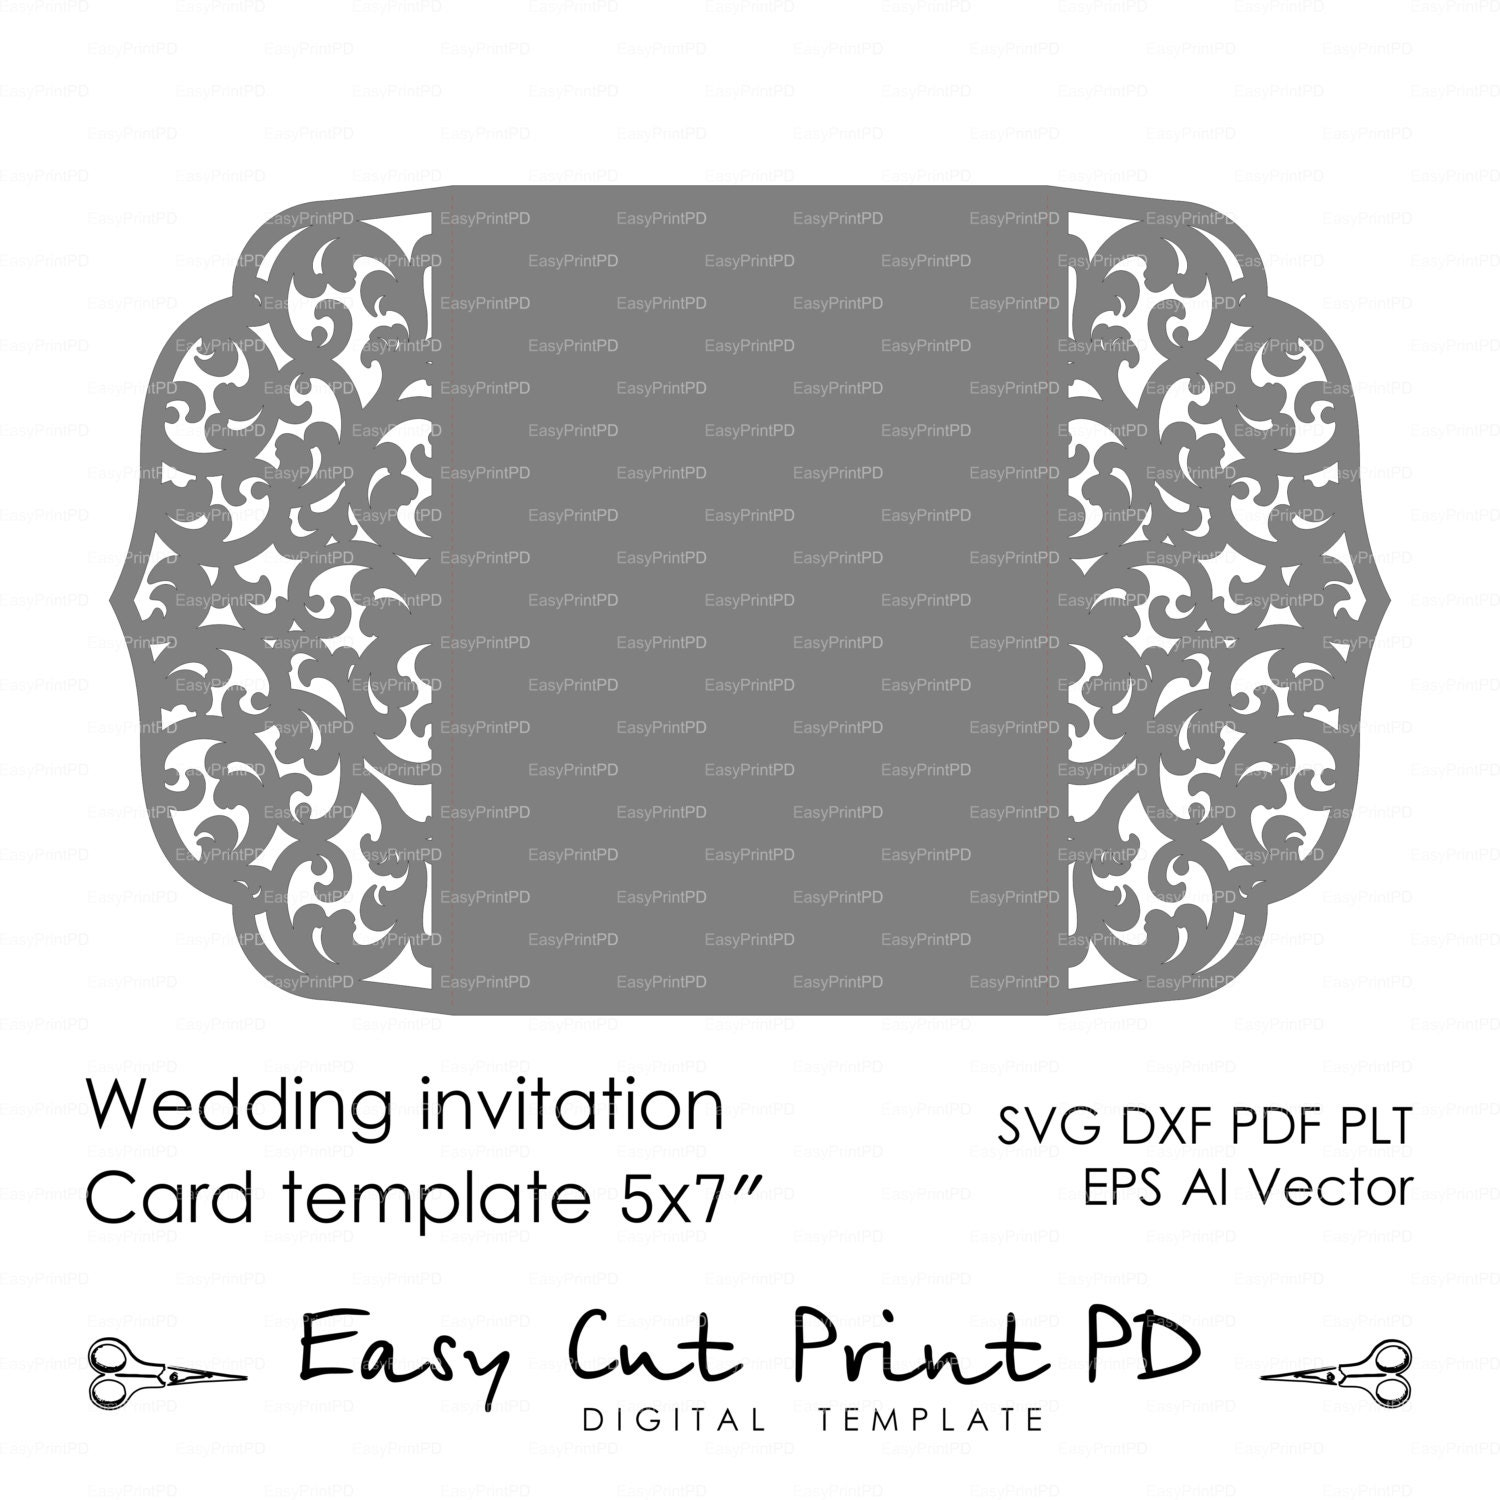 Invitation Card Template Video: Wedding Invitation Pattern Card 5x7 Template By EasyCutPrintPD